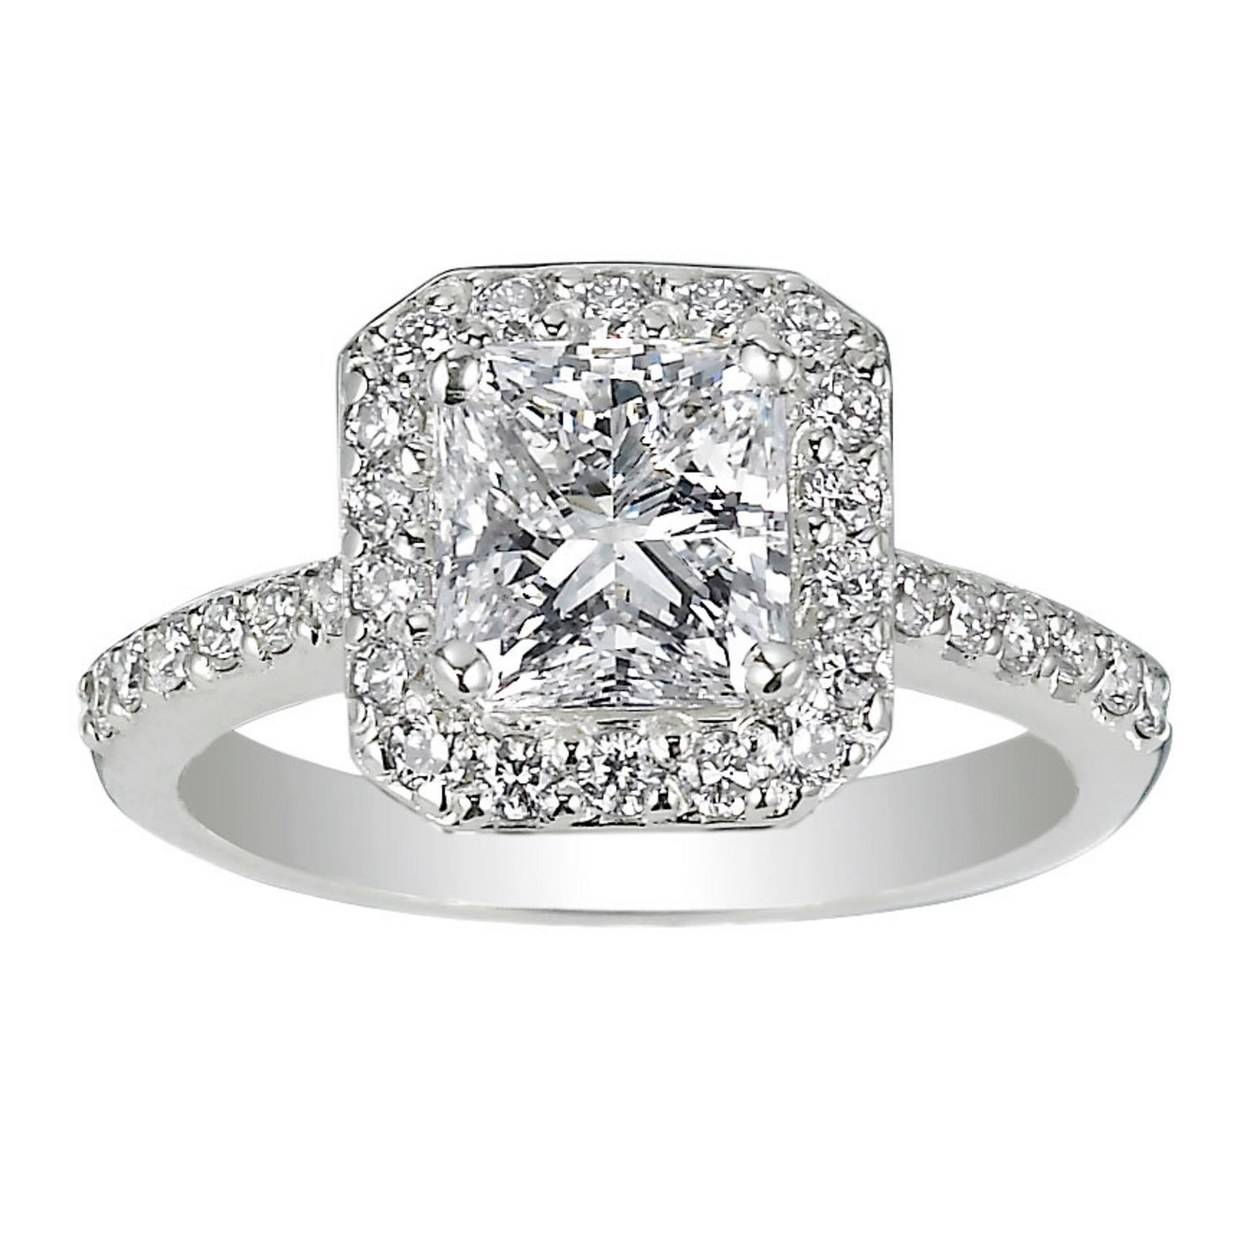 62 Diamond Engagement Rings Under $5,000 | Glamour Intended For Antique Round Diamond Engagement Rings (View 5 of 15)